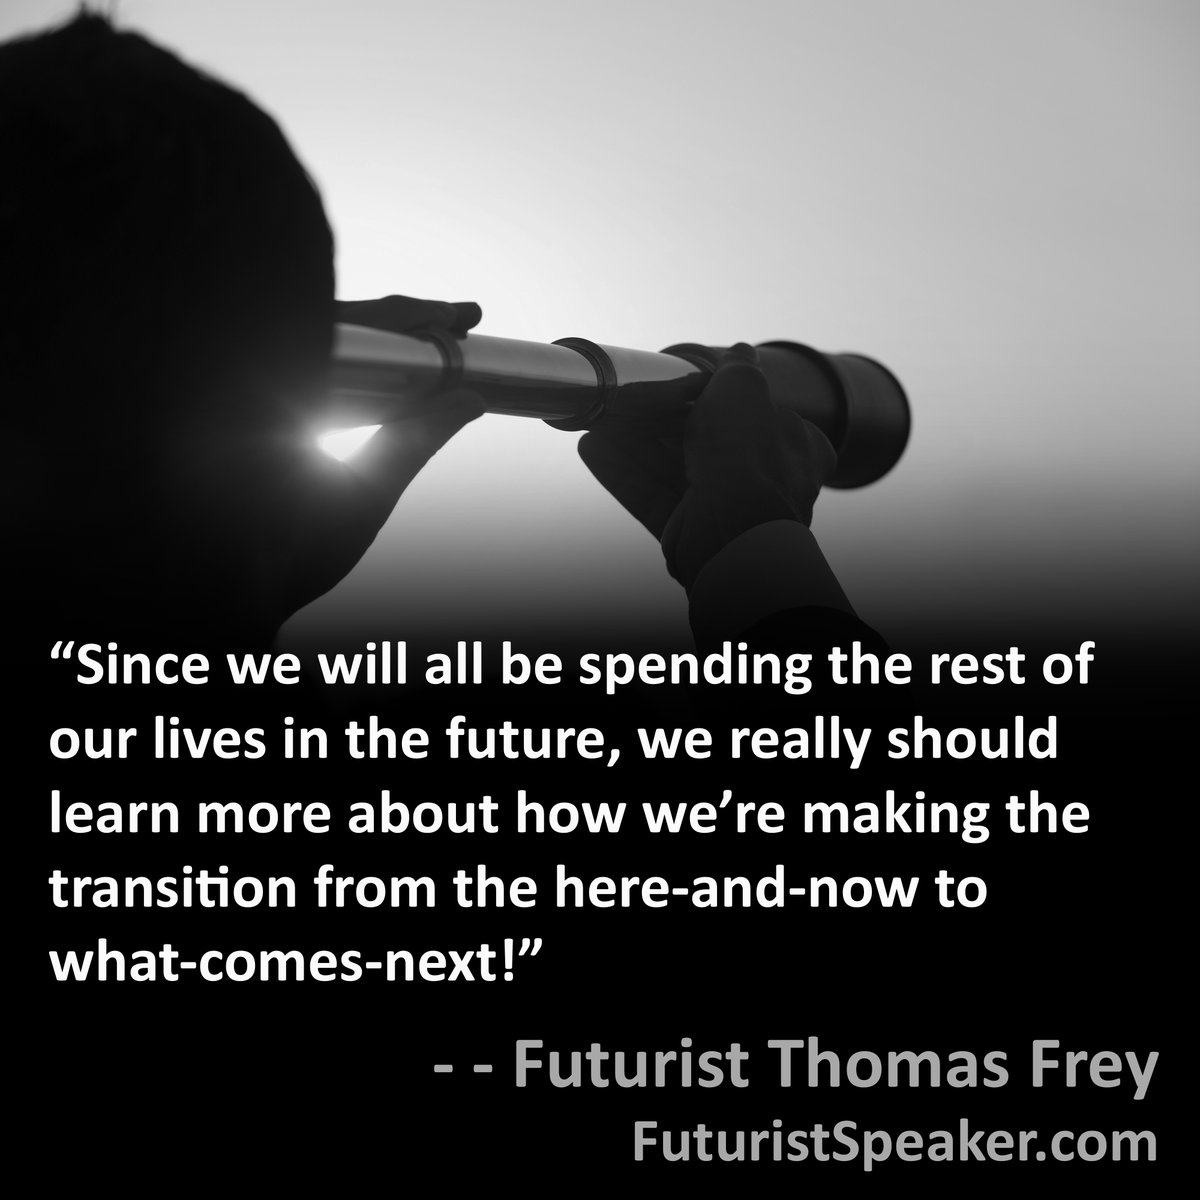 Foresight Journaling is a contemplative thought process that allows us to reprogram our inner vision.  Sign up today! https://futuristspeaker.com/?page_id=29444 http://FuturistSpeaker.com #foresight #predictions #futuretrends #futureofwork #futurejobs #keynotespeaker #futuriststrategypic.twitter.com/NfcsHFMAt4